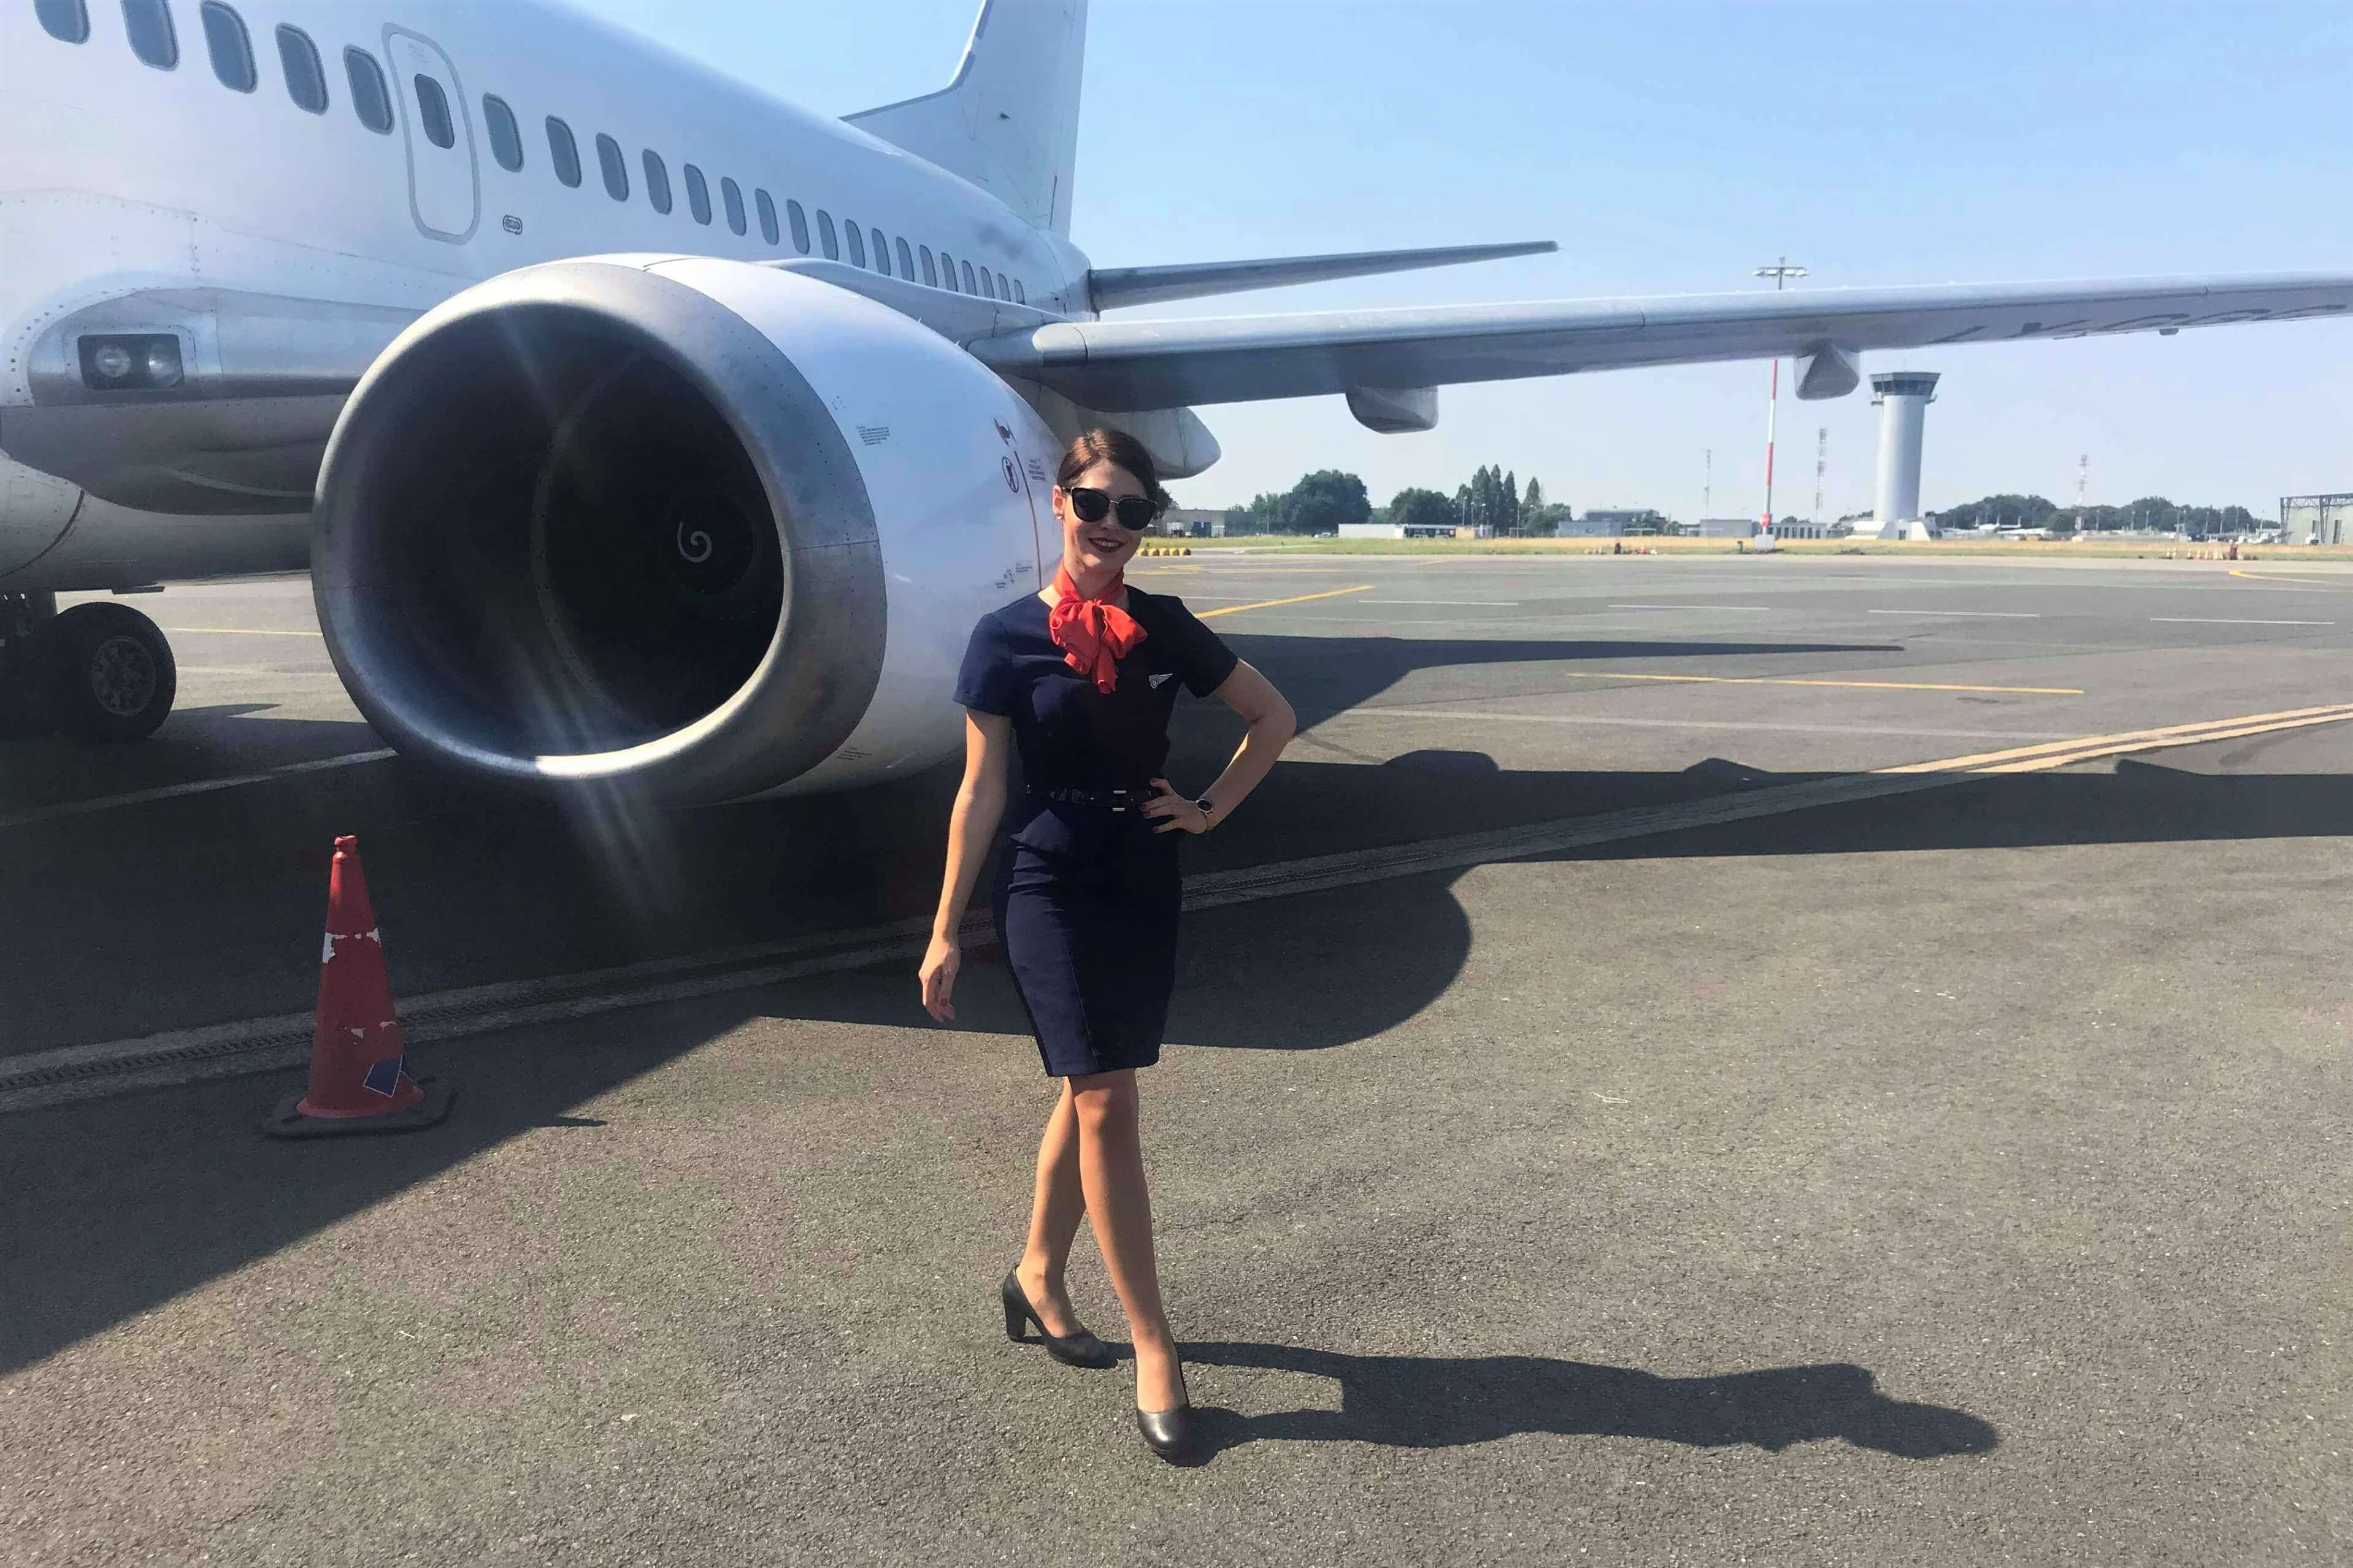 Flight attendant's story: lost job while stuck in exotic island